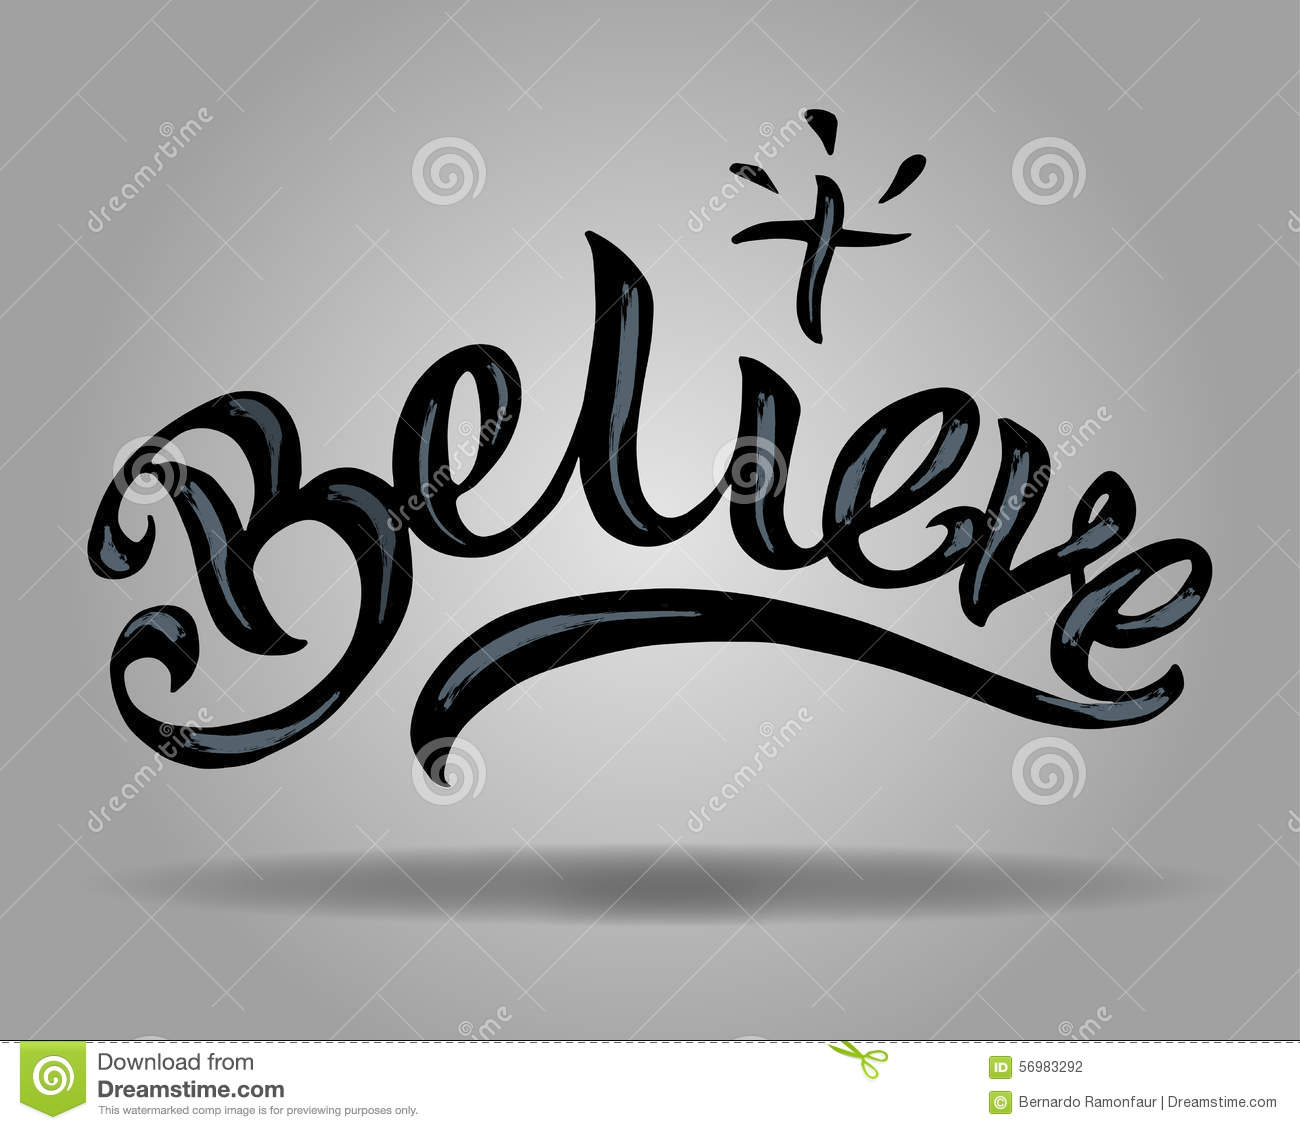 Hand drawn vector illustration or drawing of the word Believe.